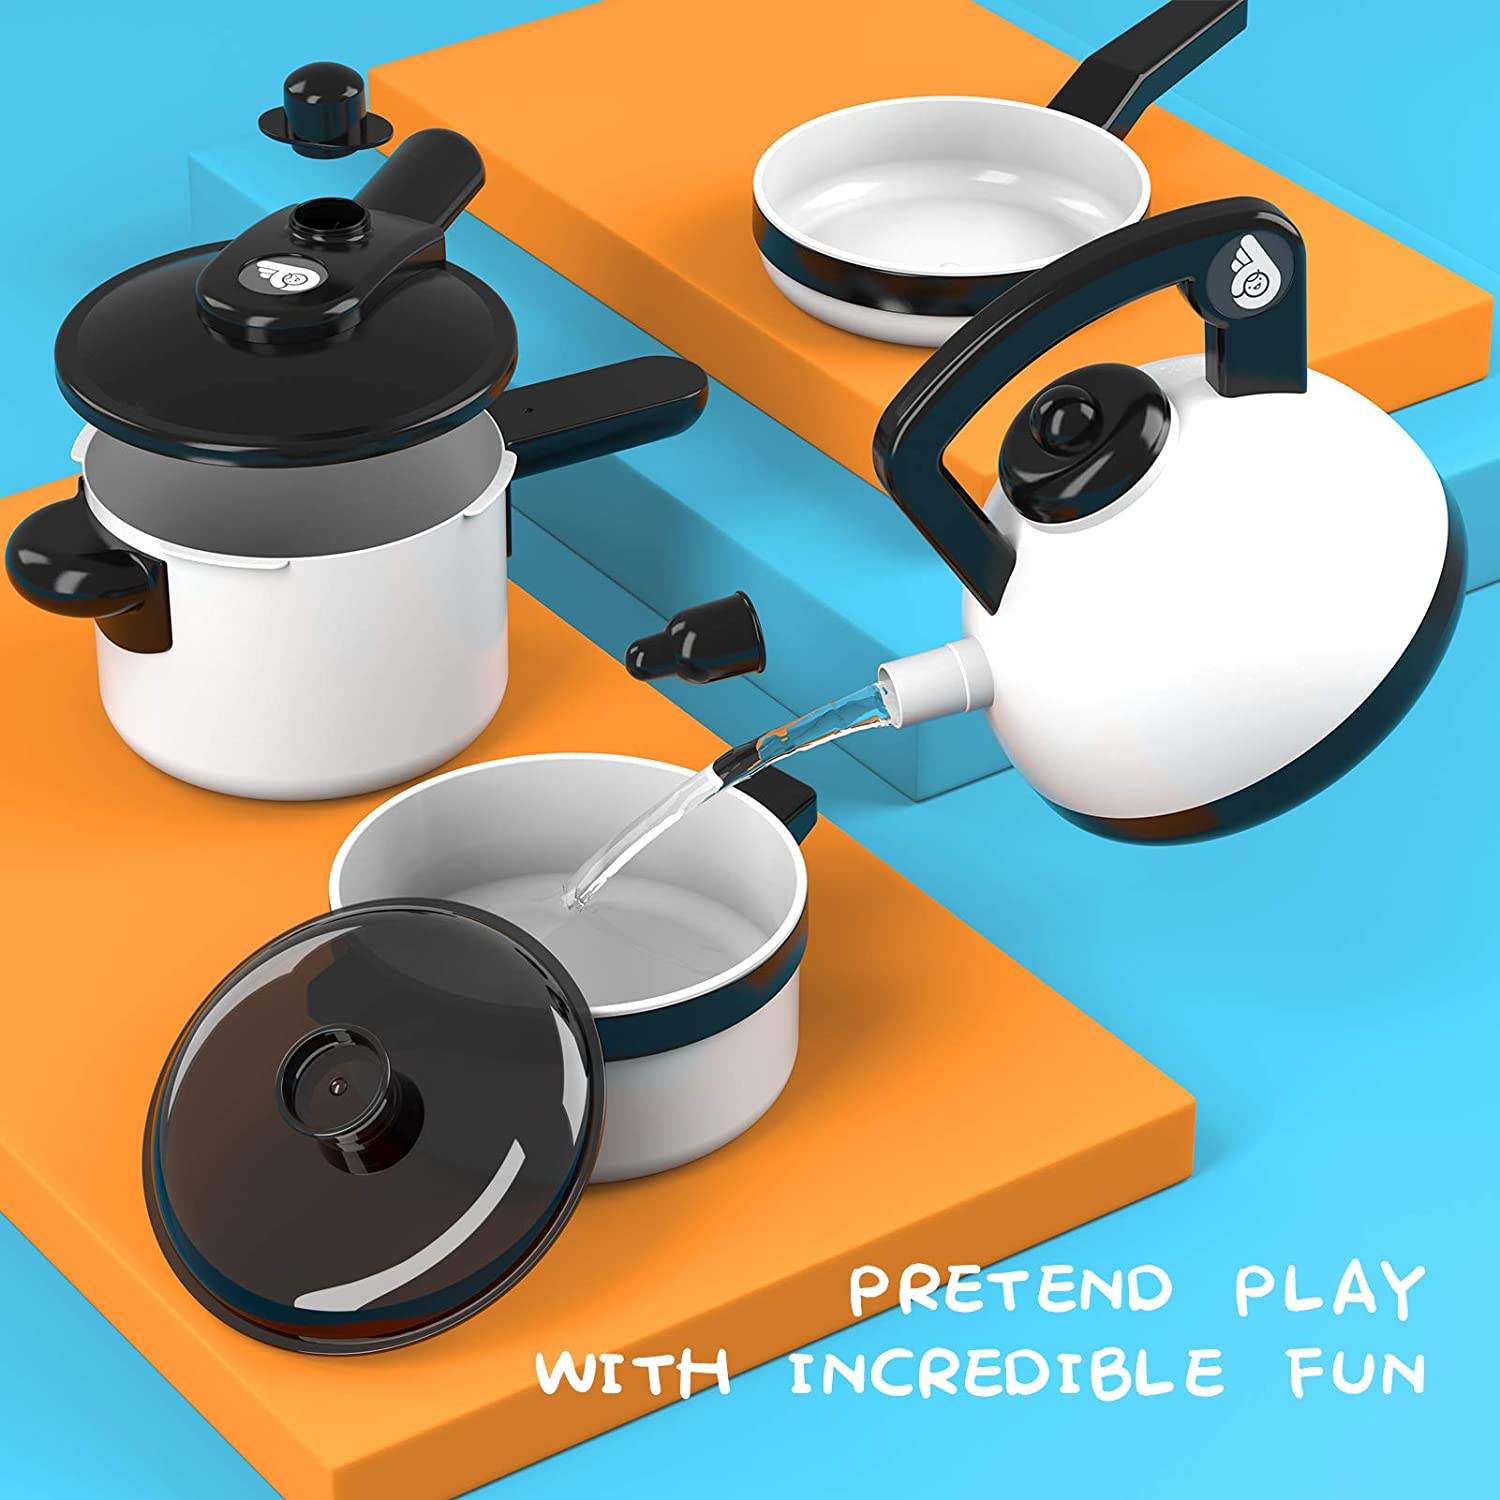 Vegetables NICEME Kitchen Play Toys,36 PCS Cooking Pretend Play Set for Girls Boys 3+ Years Old cookware set accessories for Toddlers Gifts Including Pots and Pans Play Food Toy Utensils